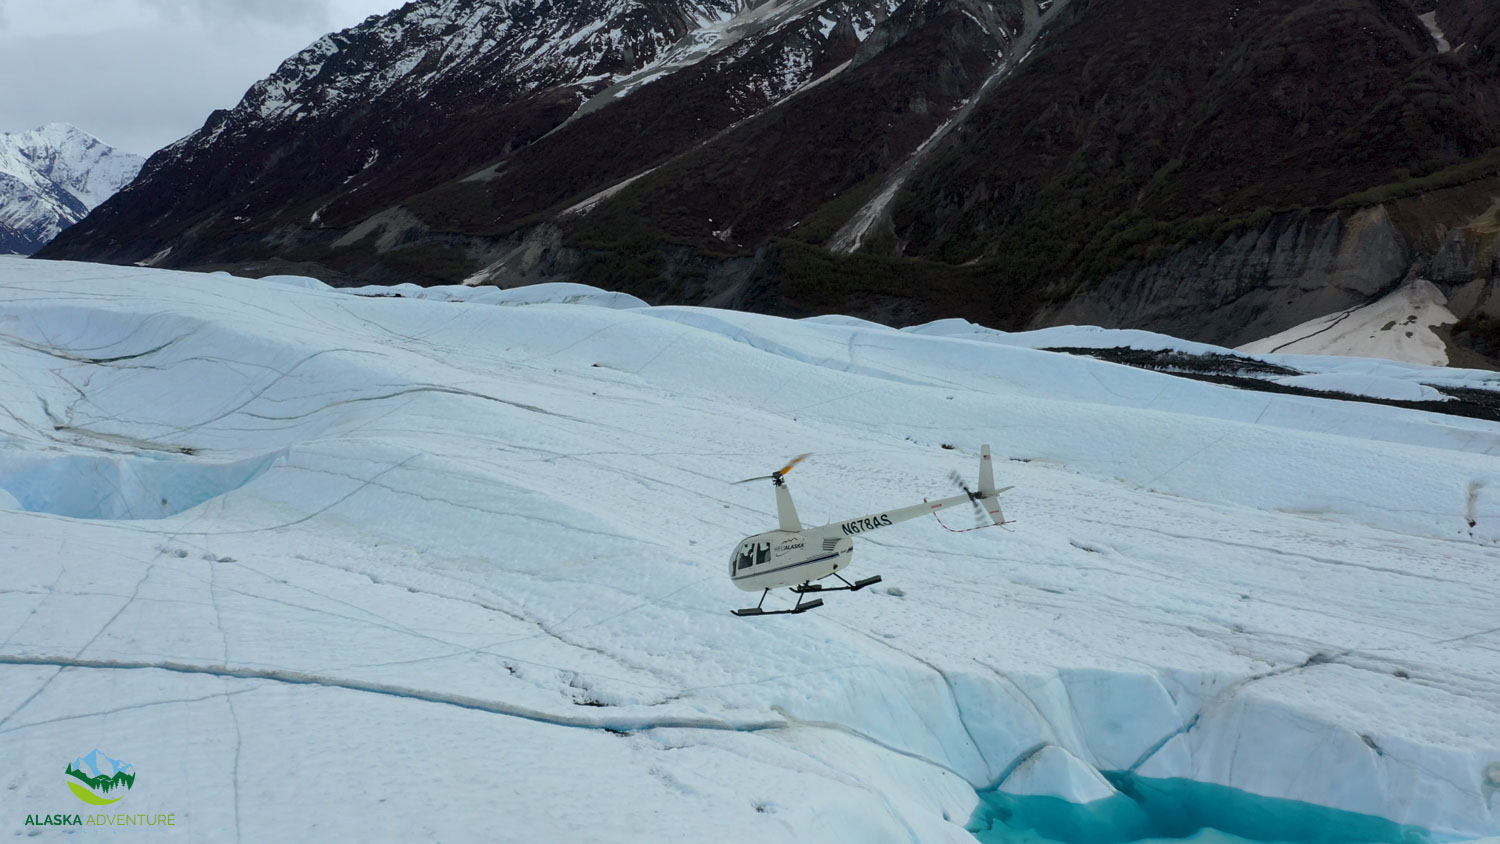 Alaska Helicopter Ice Climbing